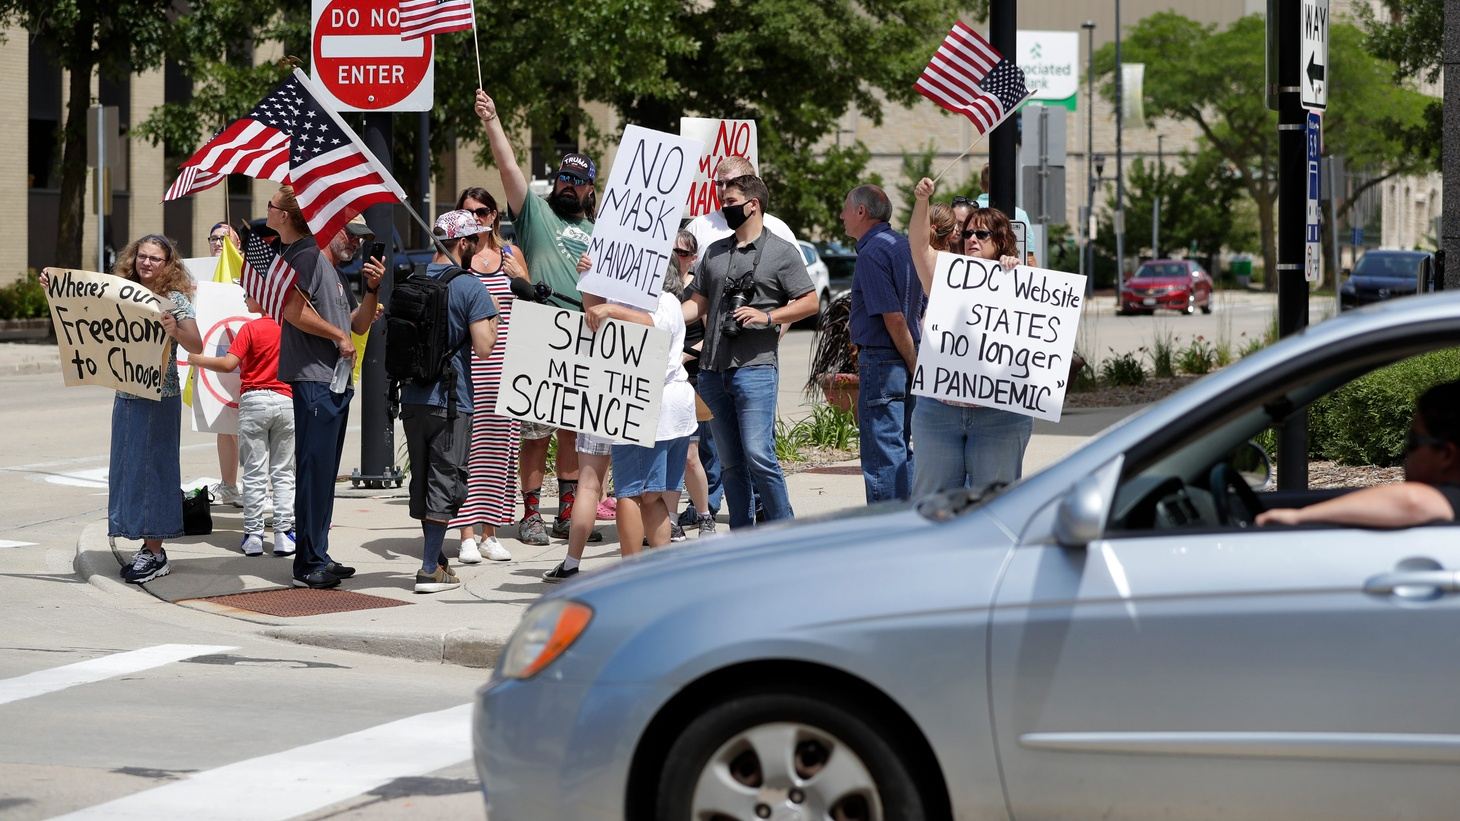 Anti-mask protesters stand outside City Hall while Mayor Eric Genrich announced his plan to implement an indoor face mask requirement throughout Green Bay during a press conference on July 20, 2020, in Green Bay, Wis.